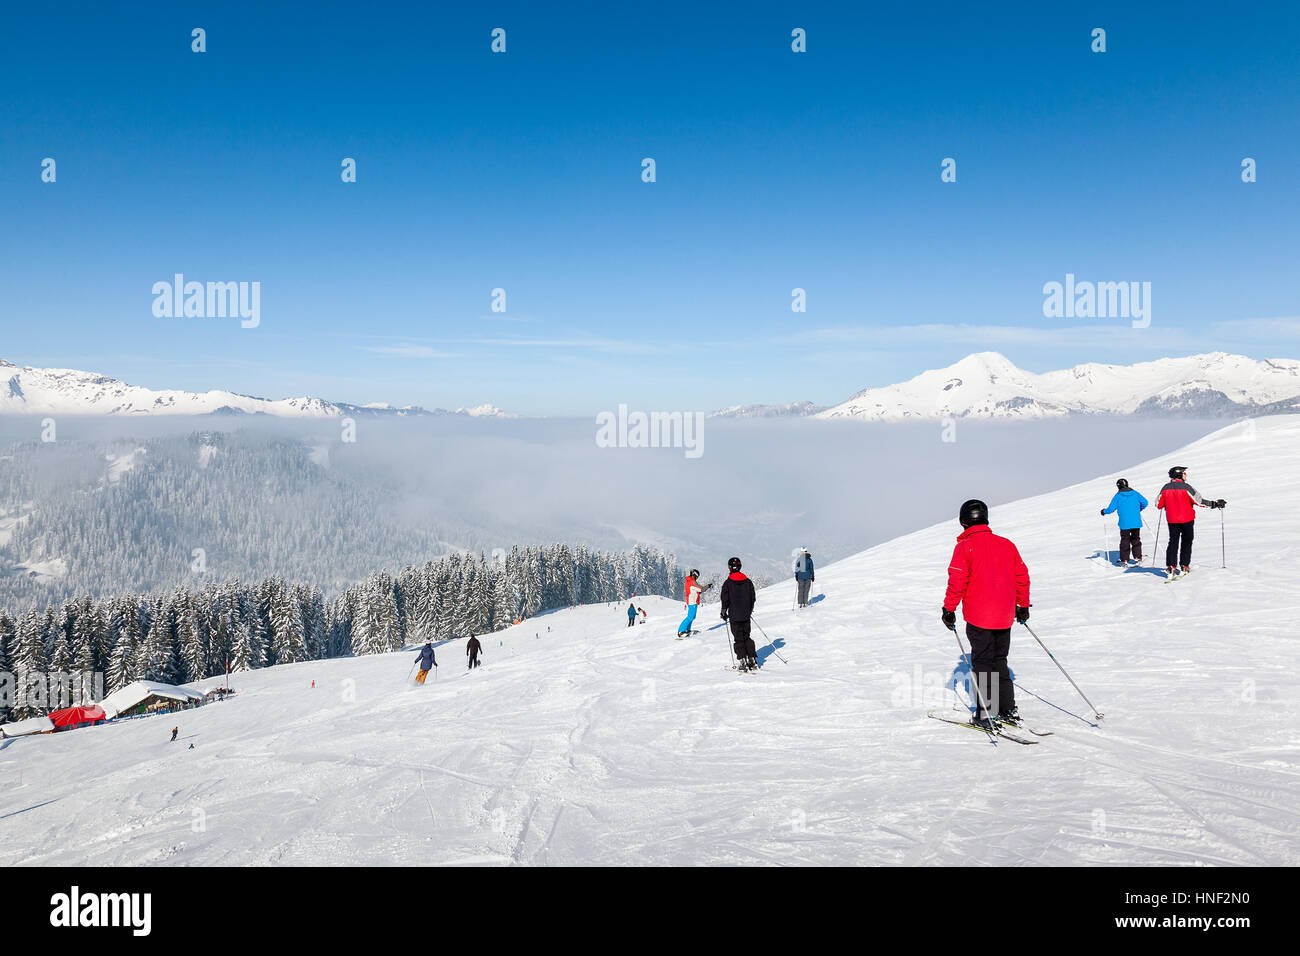 MORZINE, FRANCE - FEBRUARY 07, 2015: Skiers and snowboarders on La Combe piste in Morzine resort, part of the Portes - Stock Image